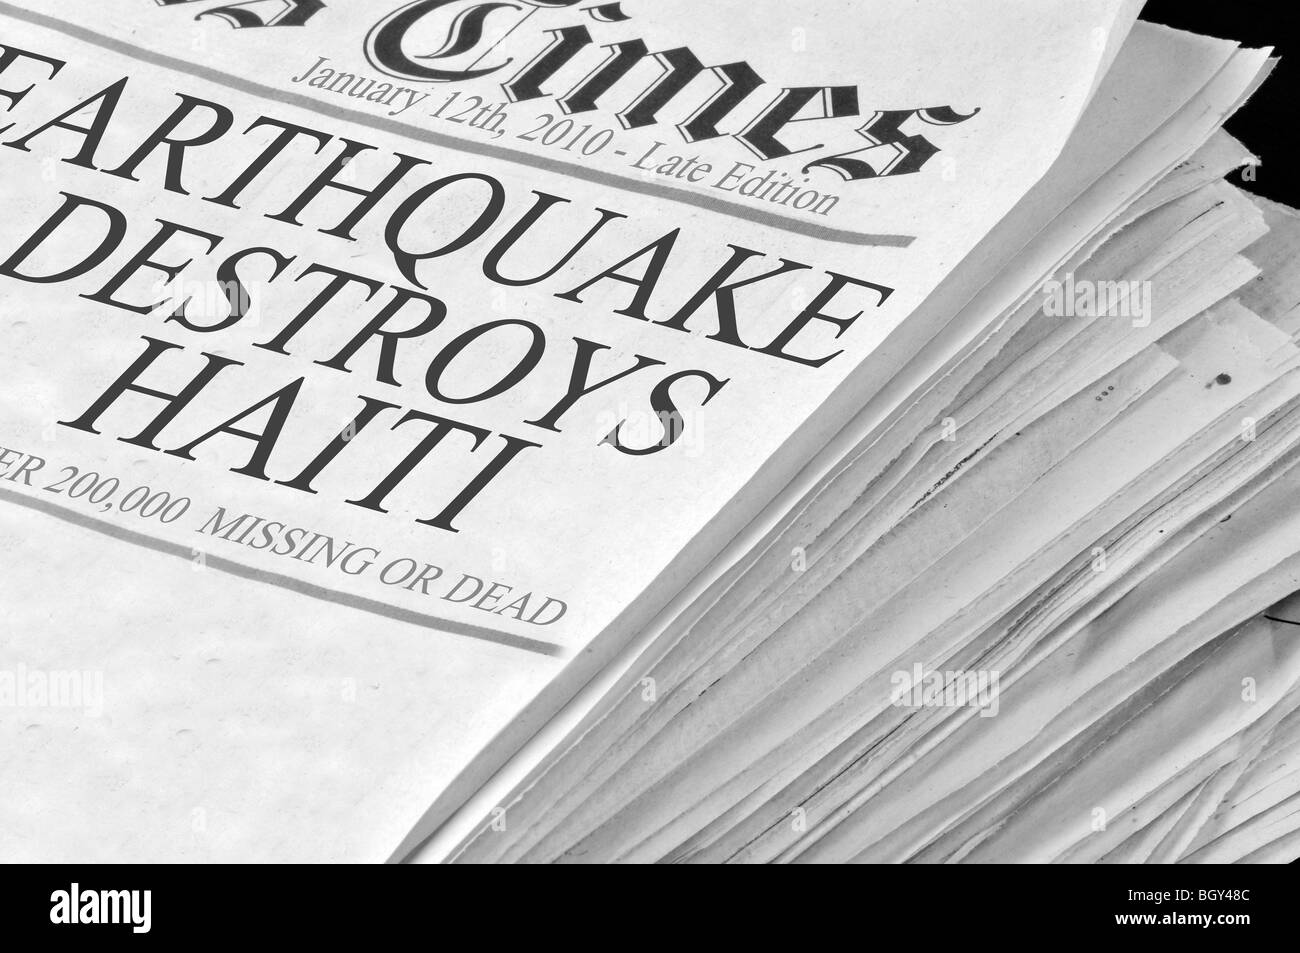 Newspaper documents the Haiti Earthquake of January 12, 2010 - Stock Image